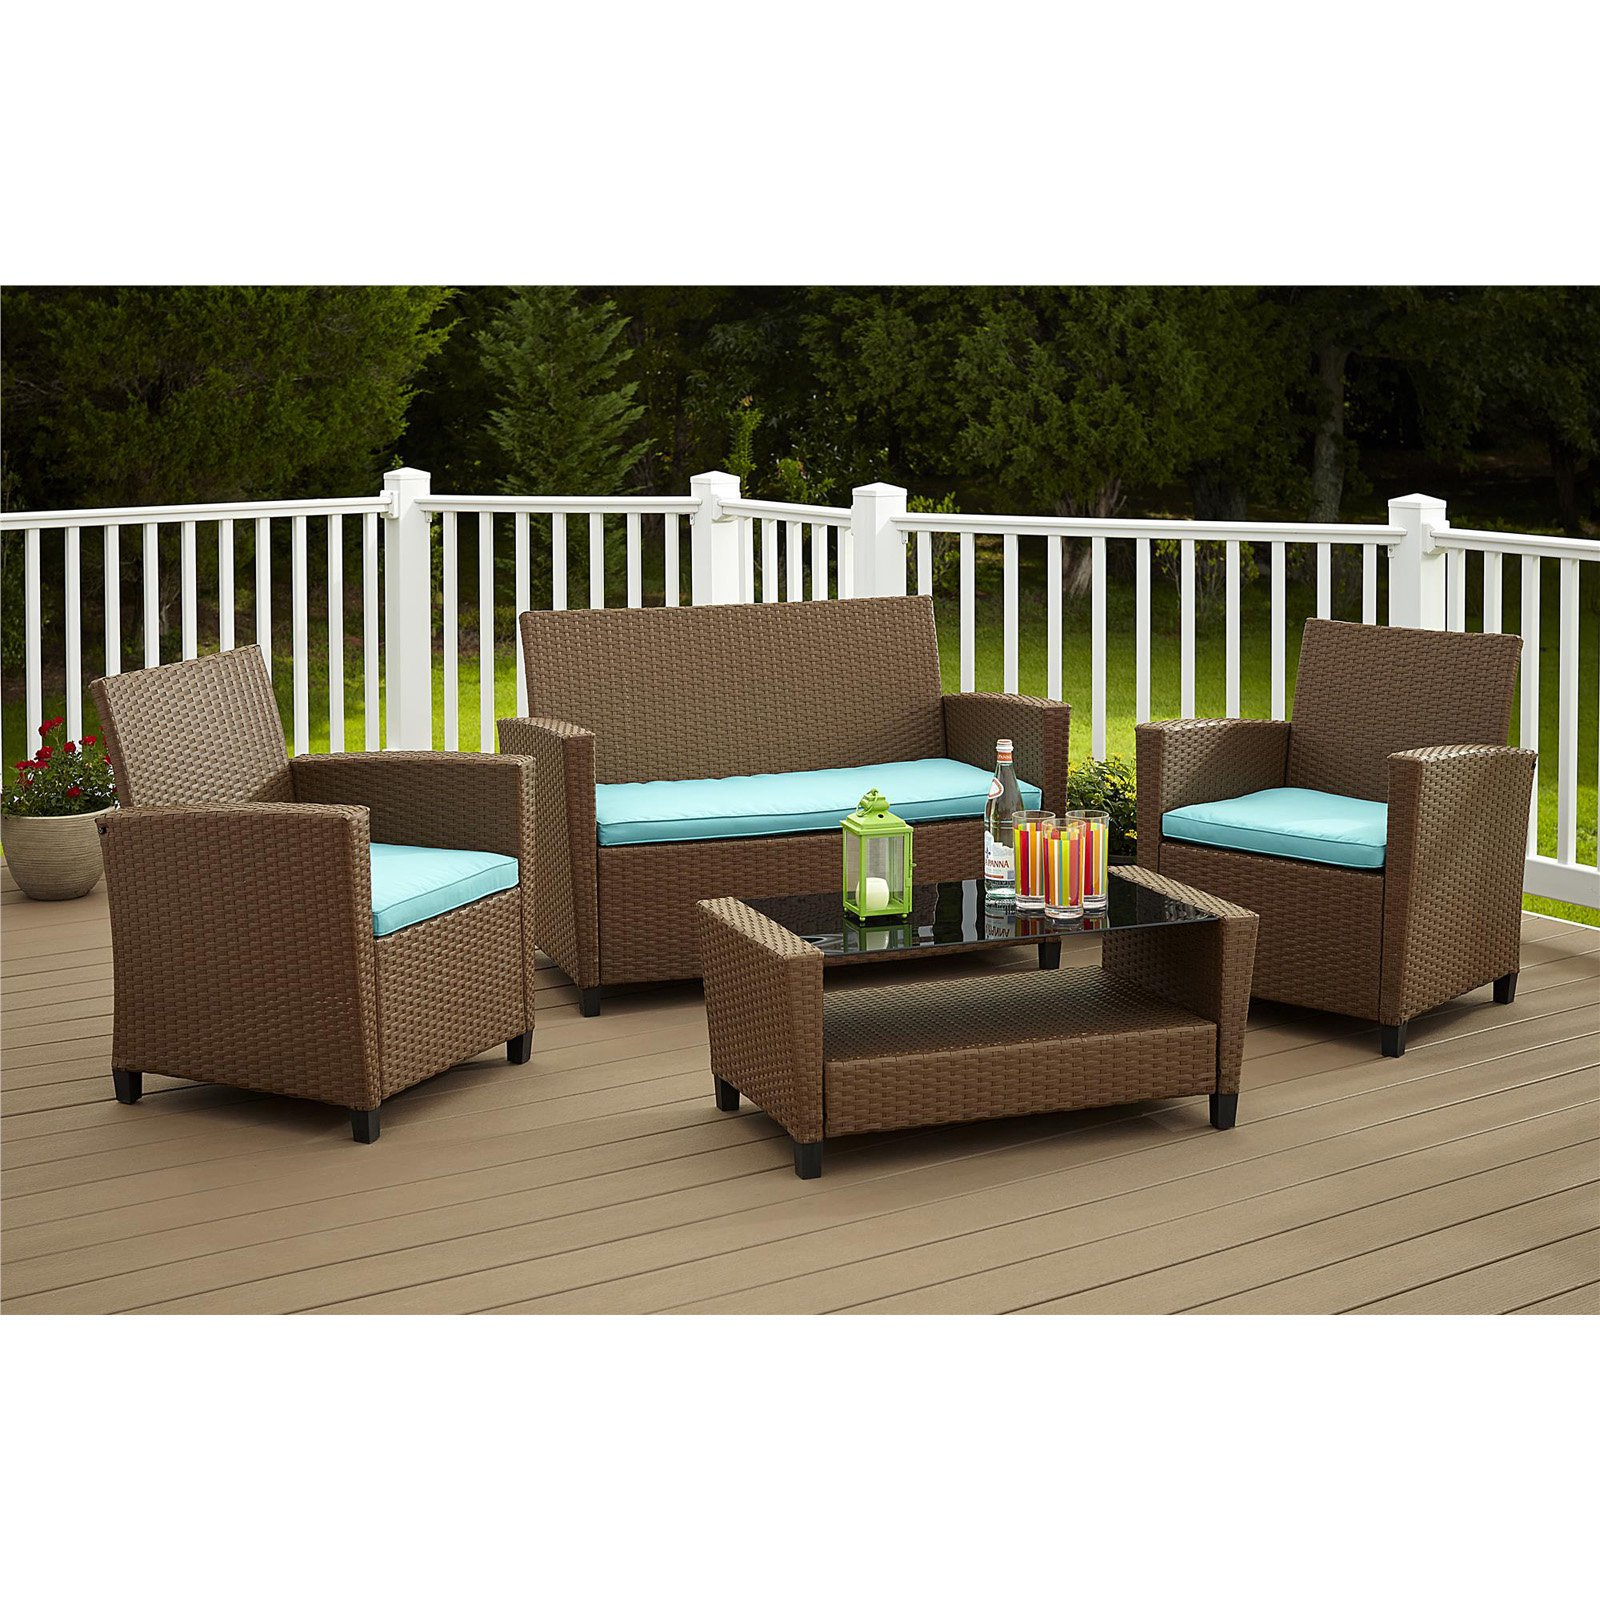 Cosco Outdoor Malmo 4-Piece Resin Wicker Patio Conversation Set by Resin Furniture